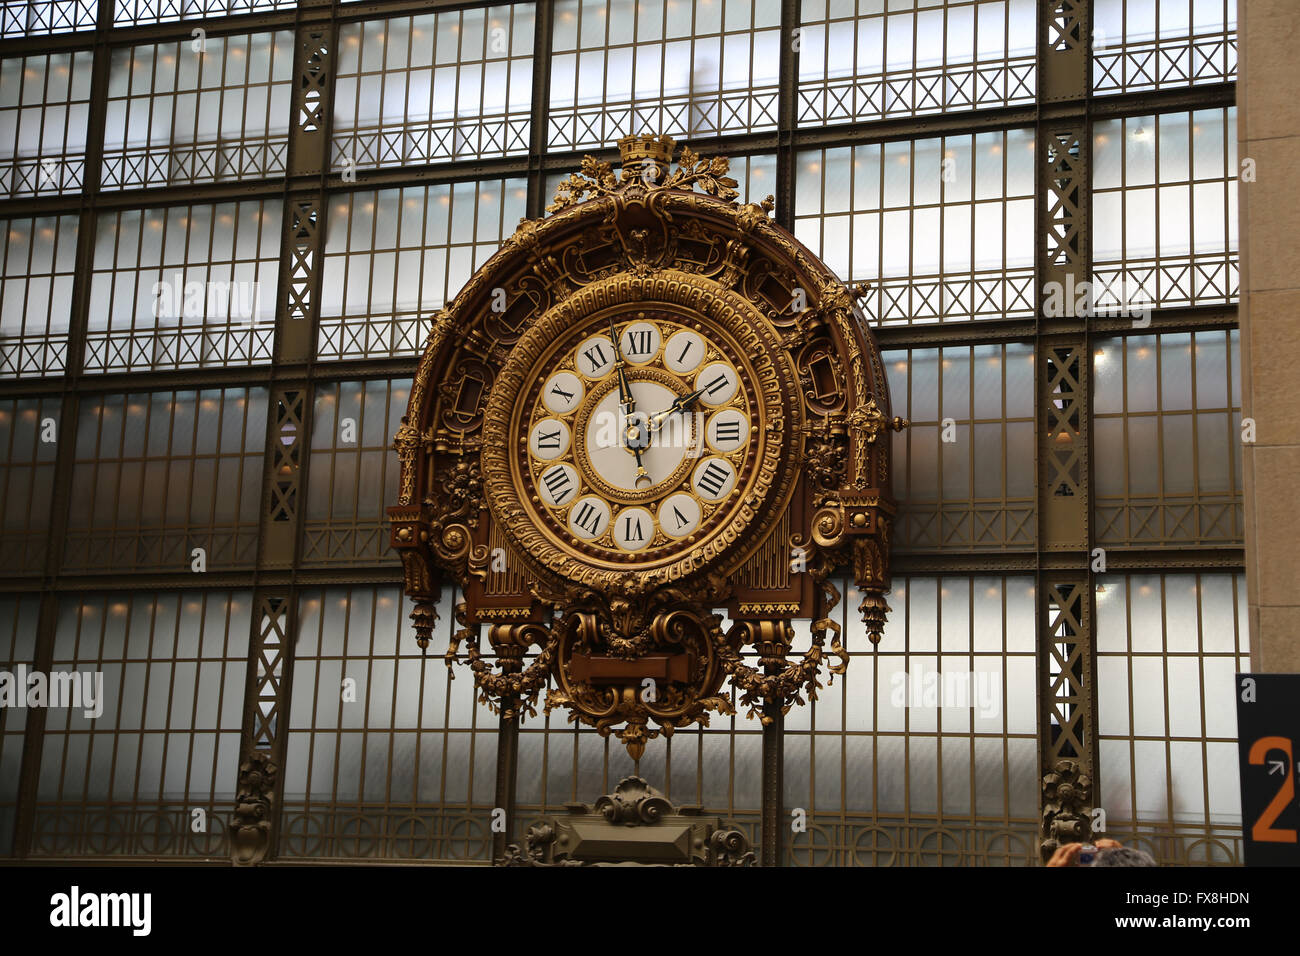 Station clock inside the Orsay Museum. Paris. France. - Stock Image